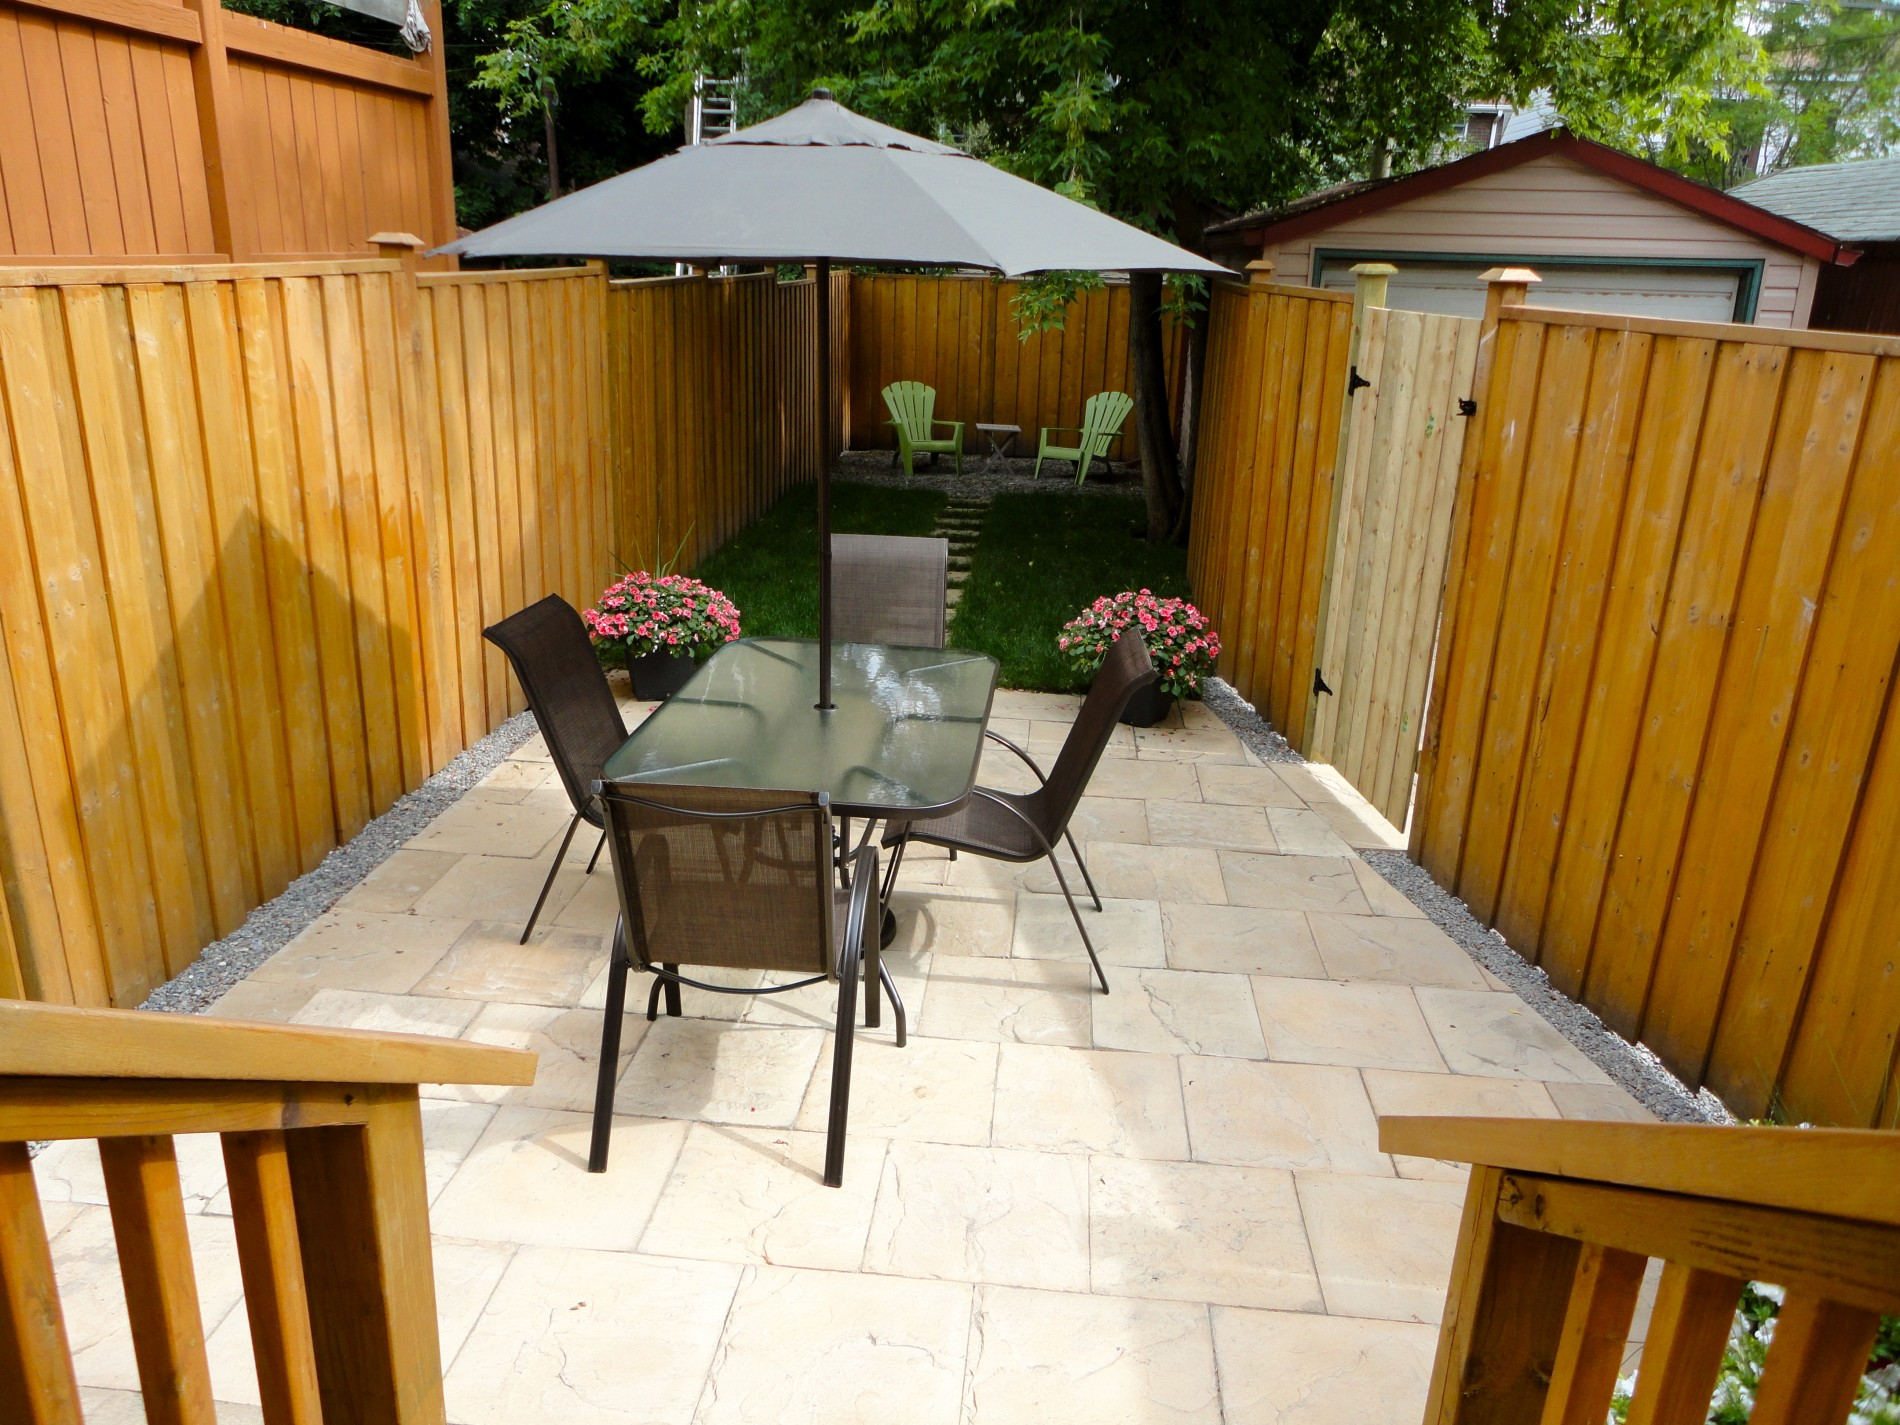 Danforth Backyard Landscaping & Patio - Featured Image